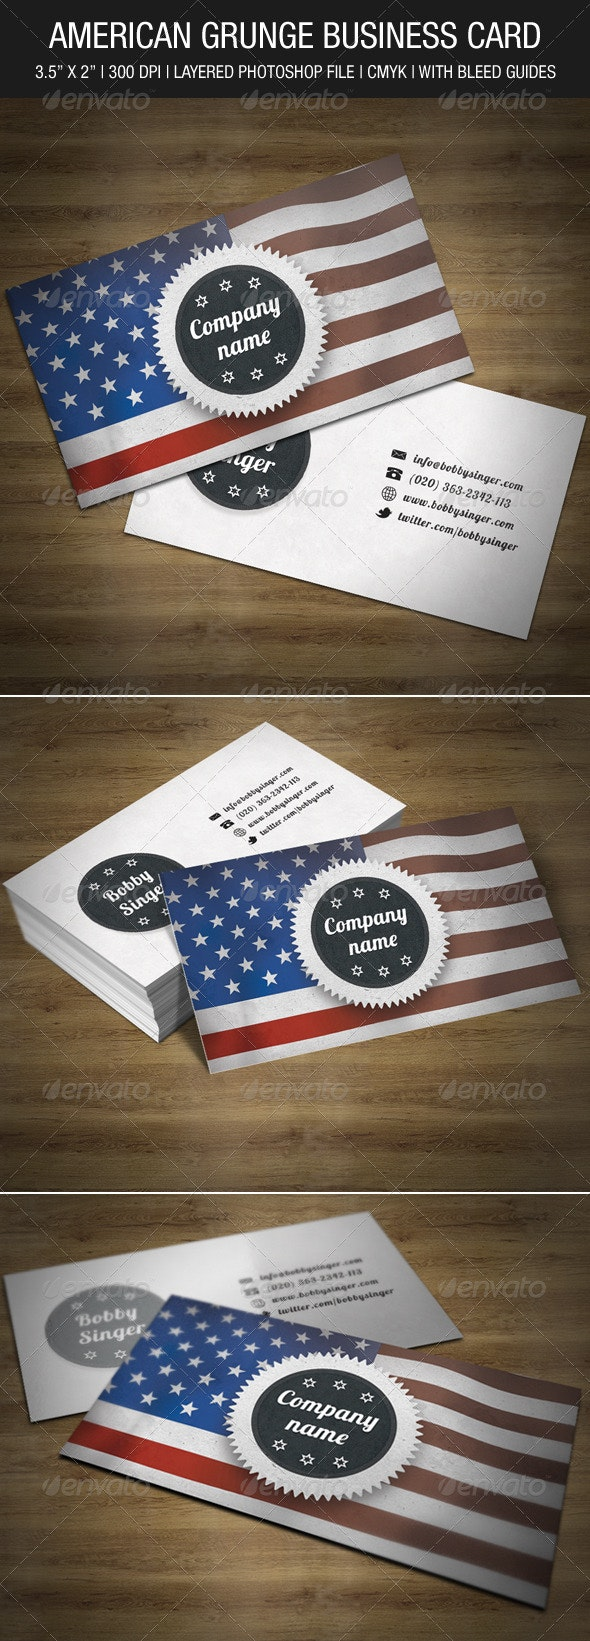 American Grunge Business Card - Creative Business Cards